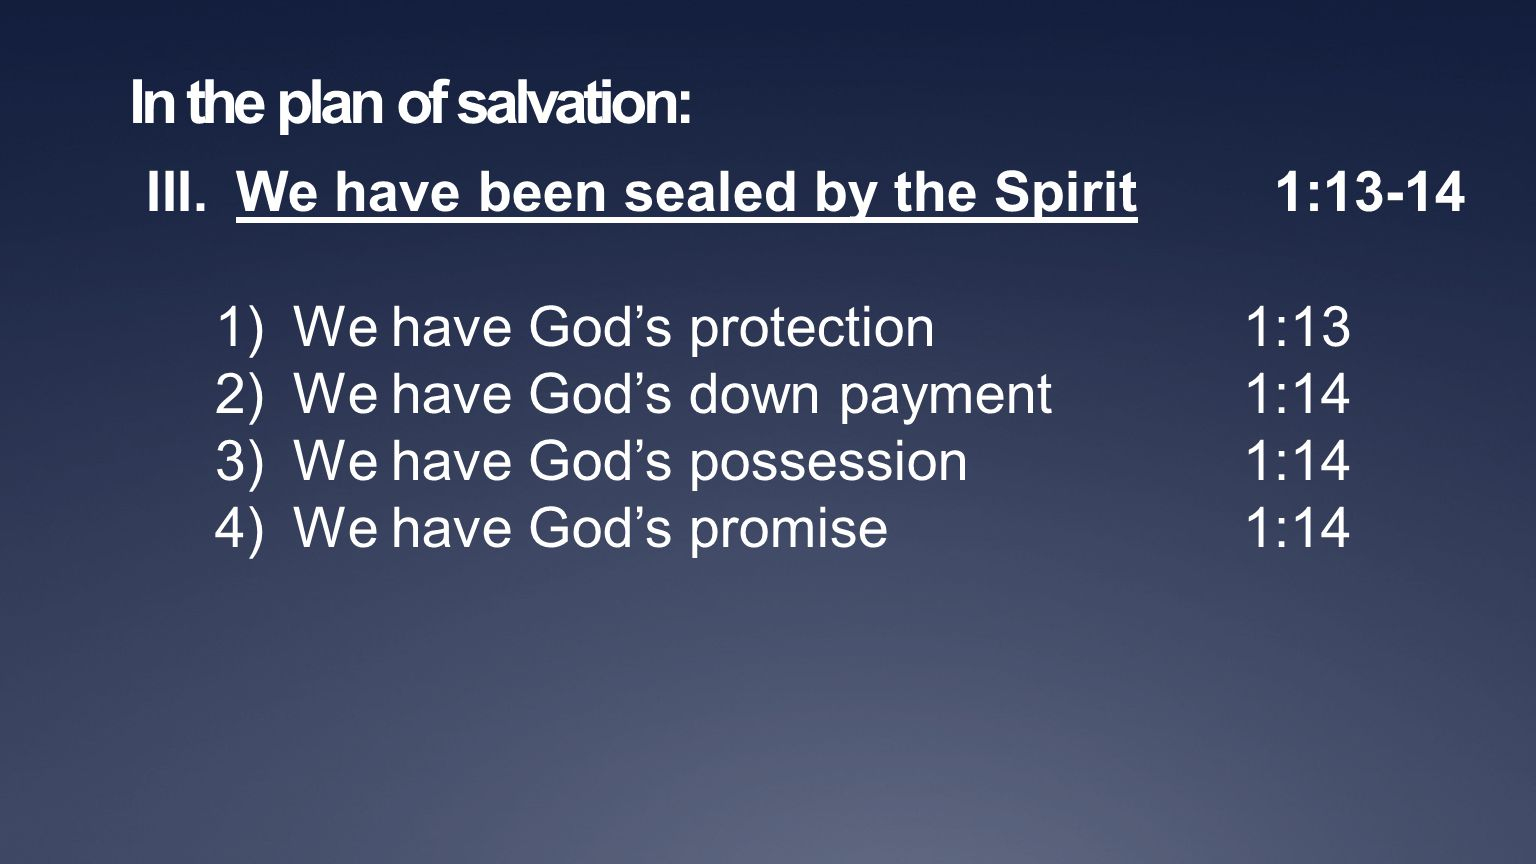 In the plan of salvation: III.We have been sealed by the Spirit 1:13-14 1)We have God's protection1:13 2)We have God's down payment1:14 3)We have God's possession1:14 4)We have God's promise1:14